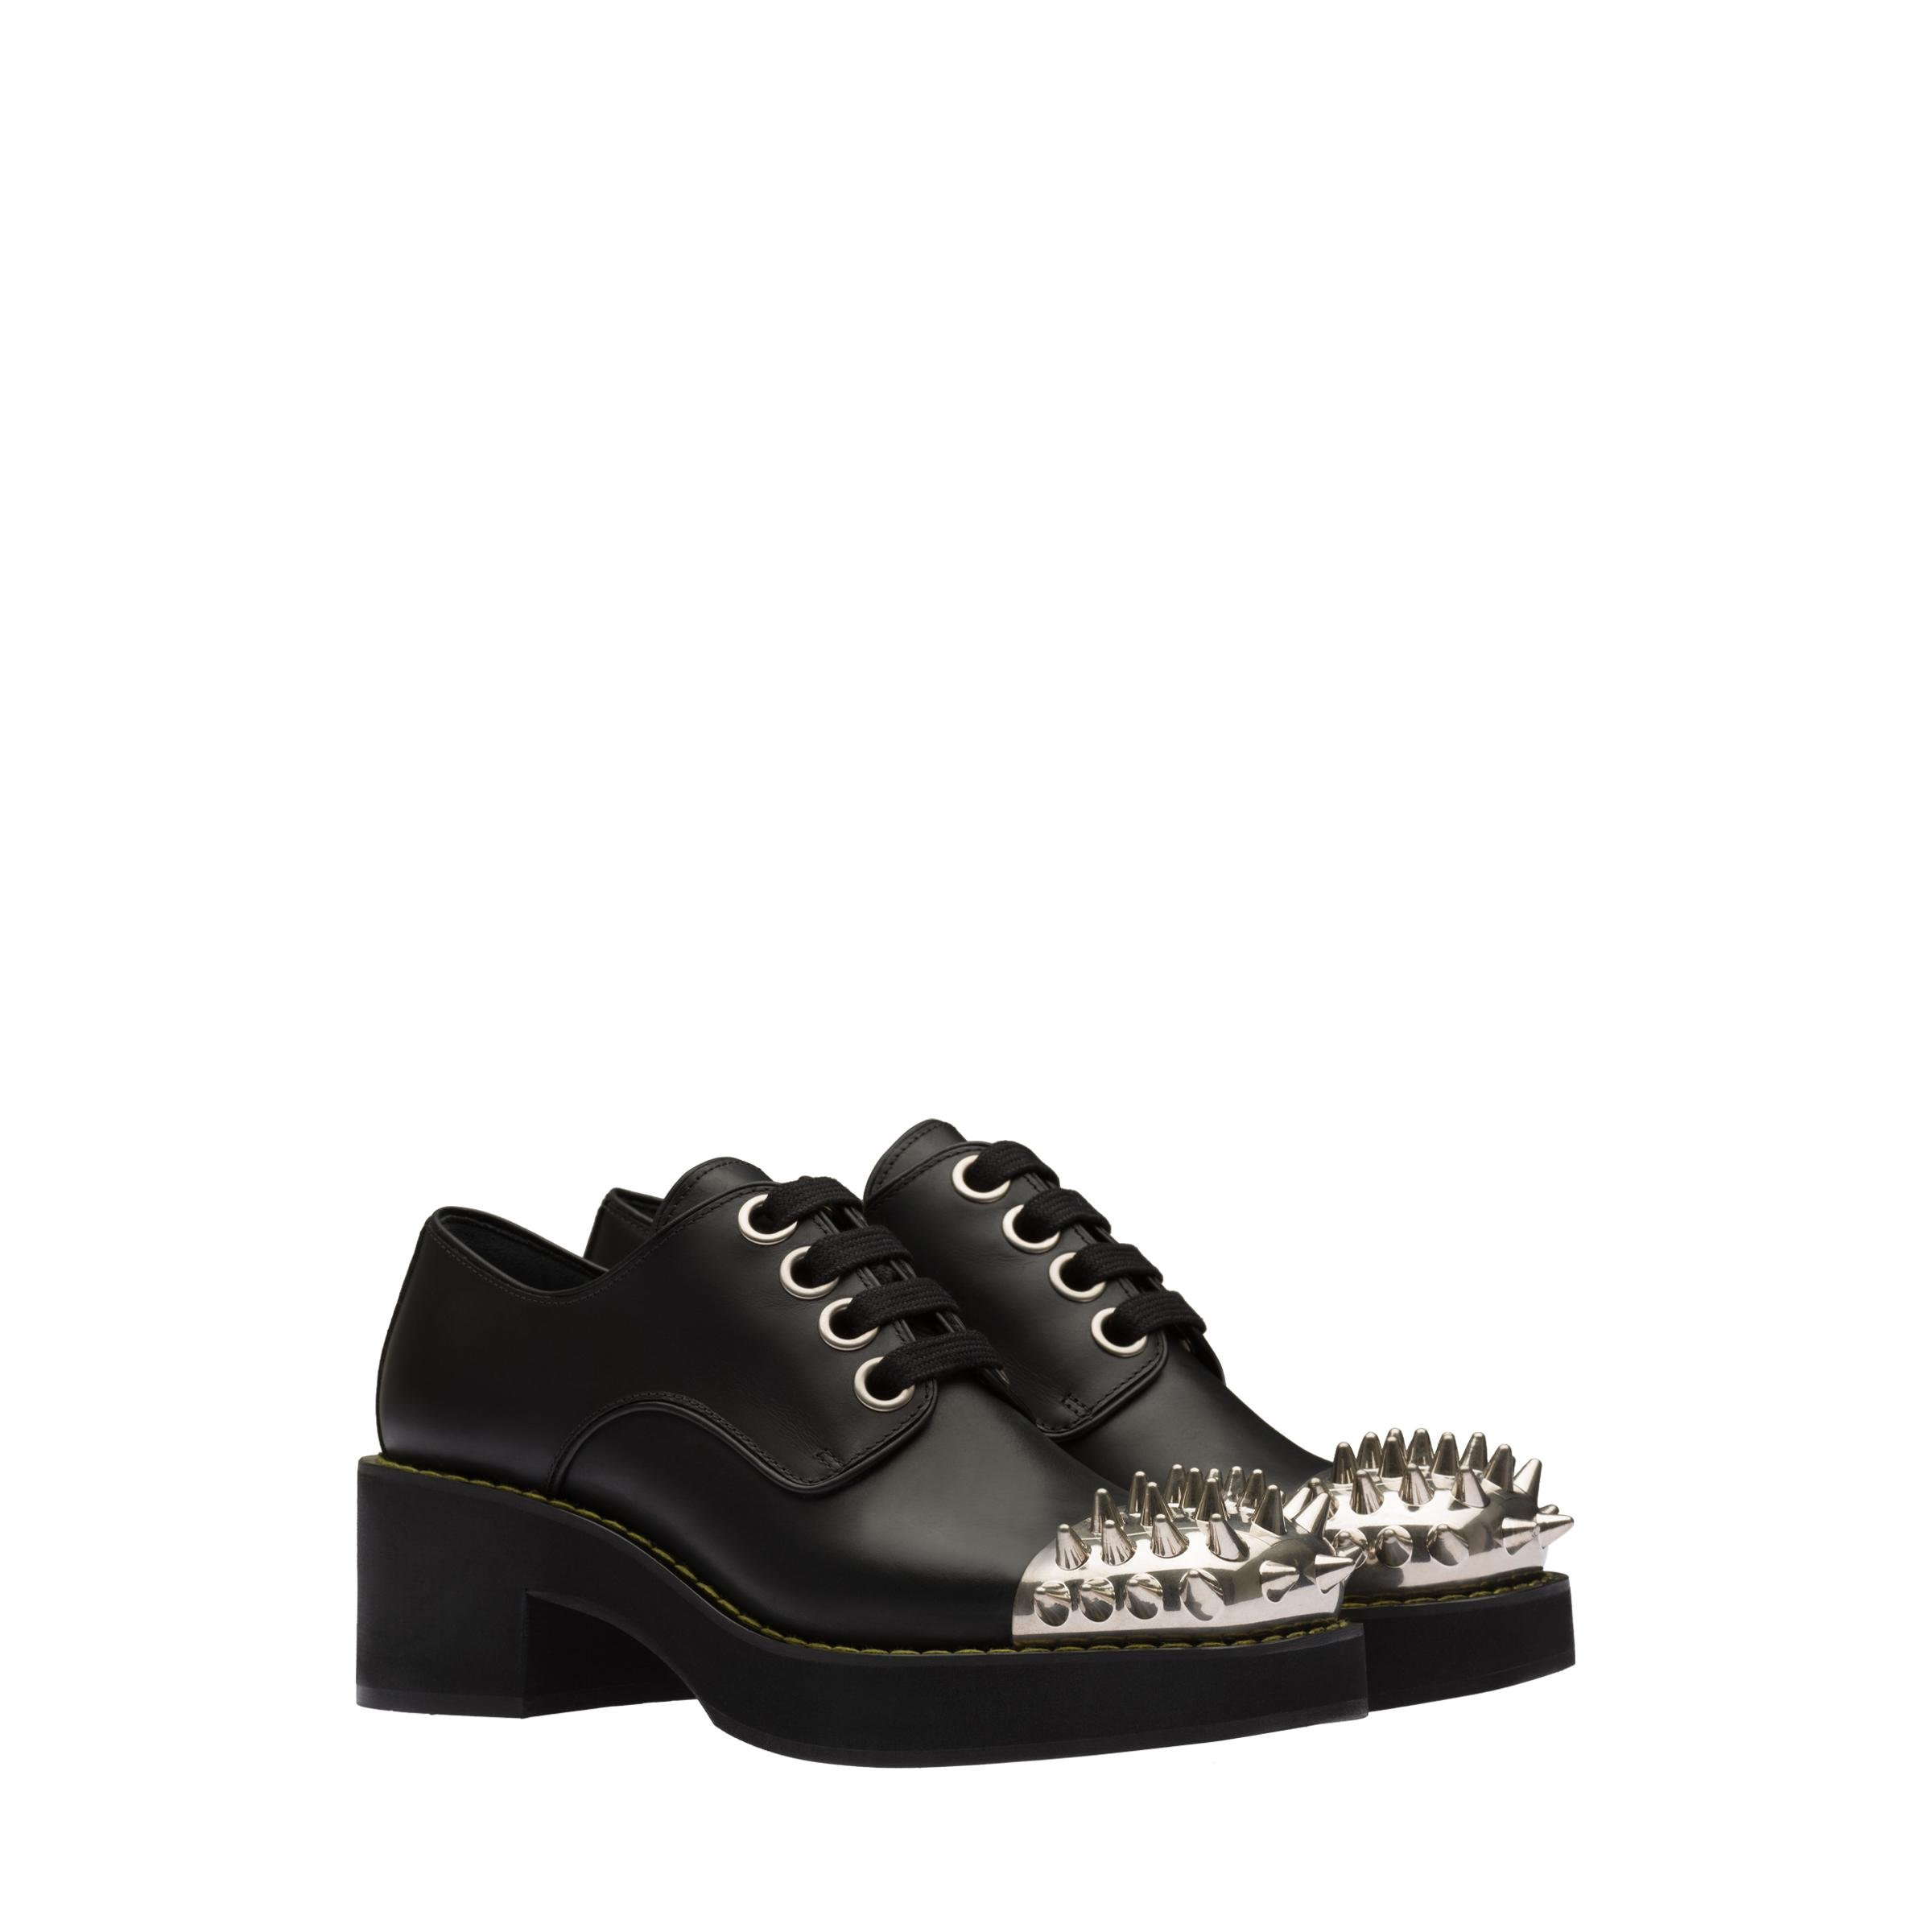 Studded Leather Laced Derby Shoes Women Black